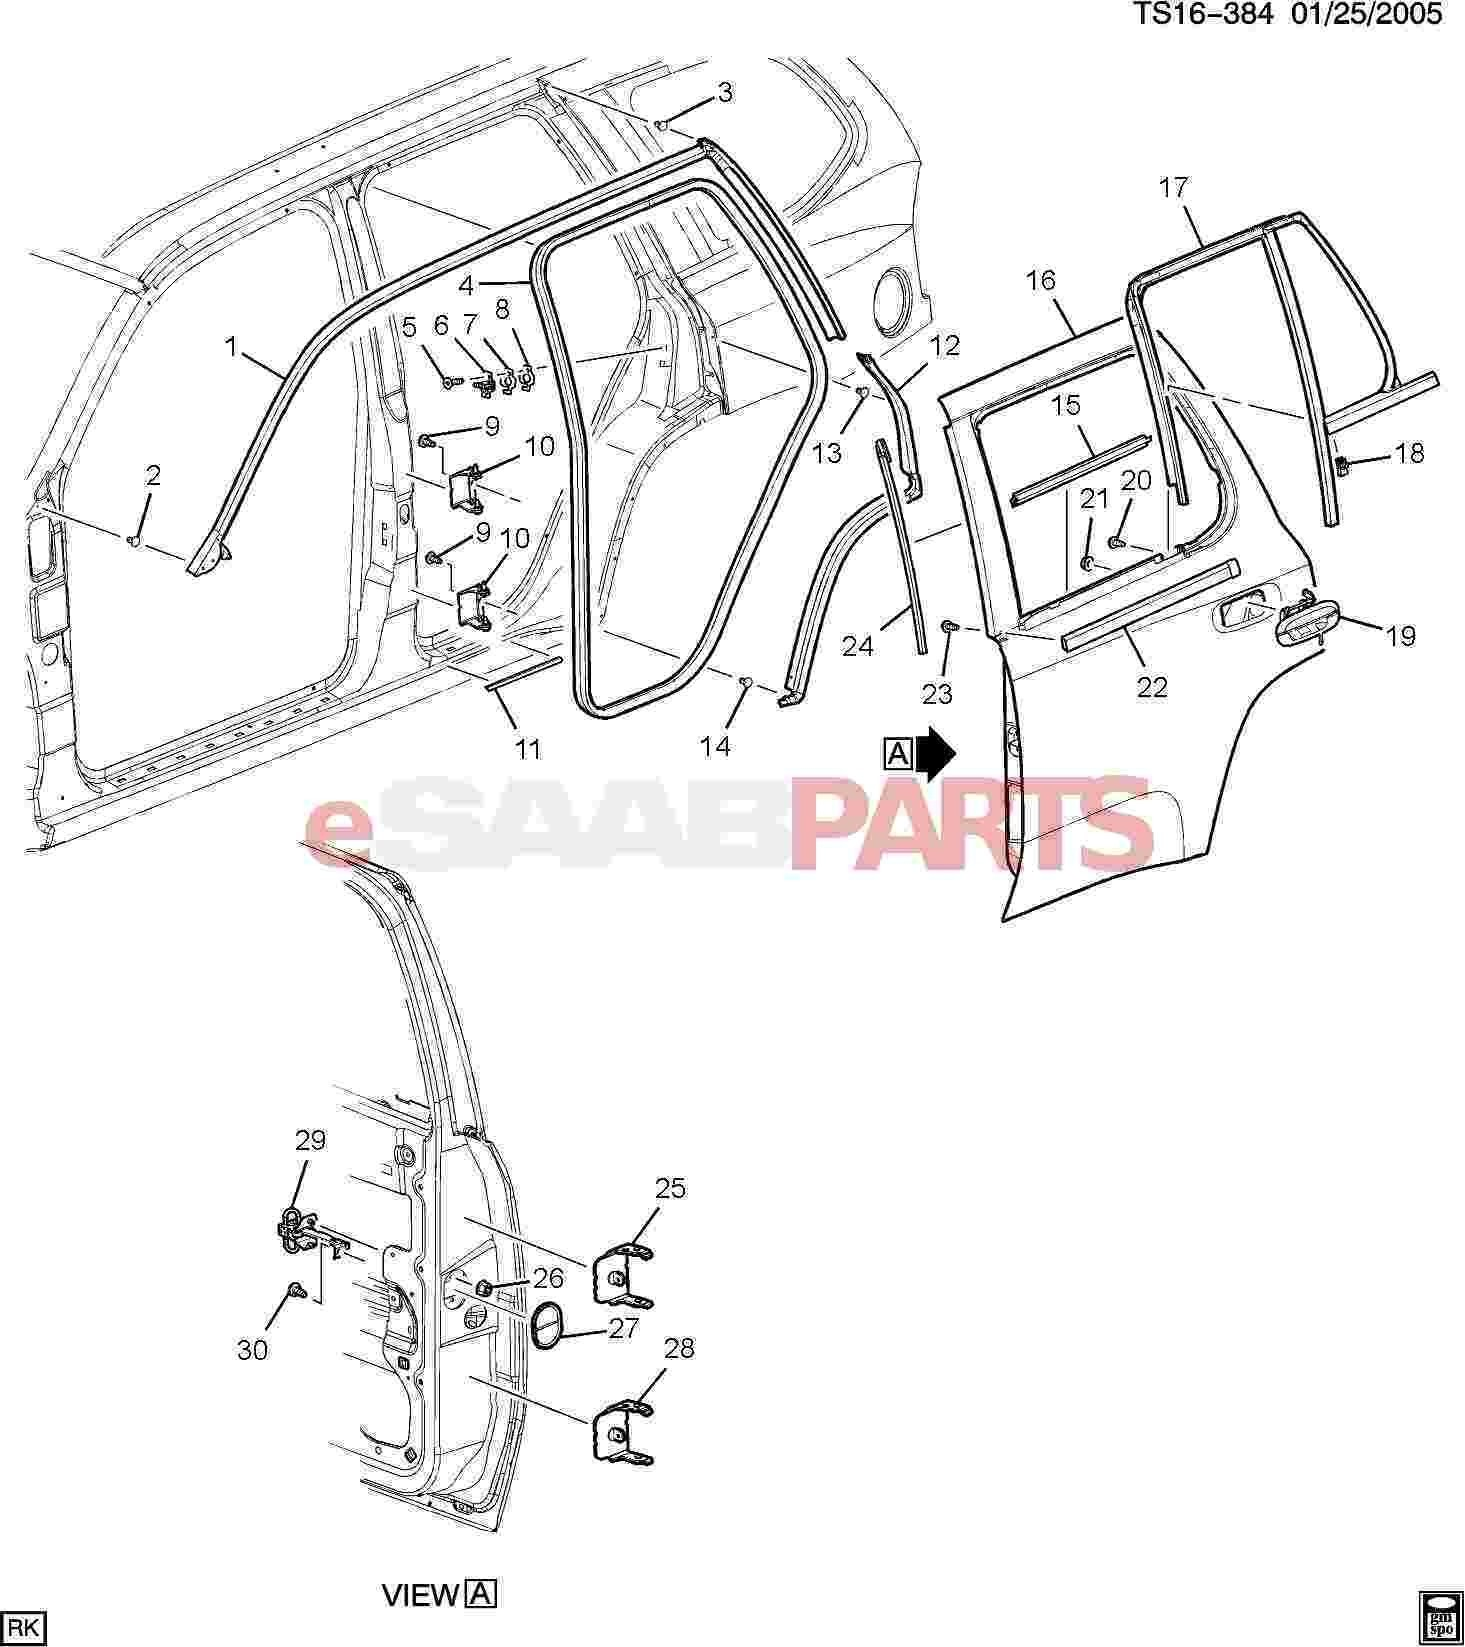 2006 Scion Tc Engine Diagram Basic Diagram Car Parts Of 2006 Scion Tc Engine Diagram